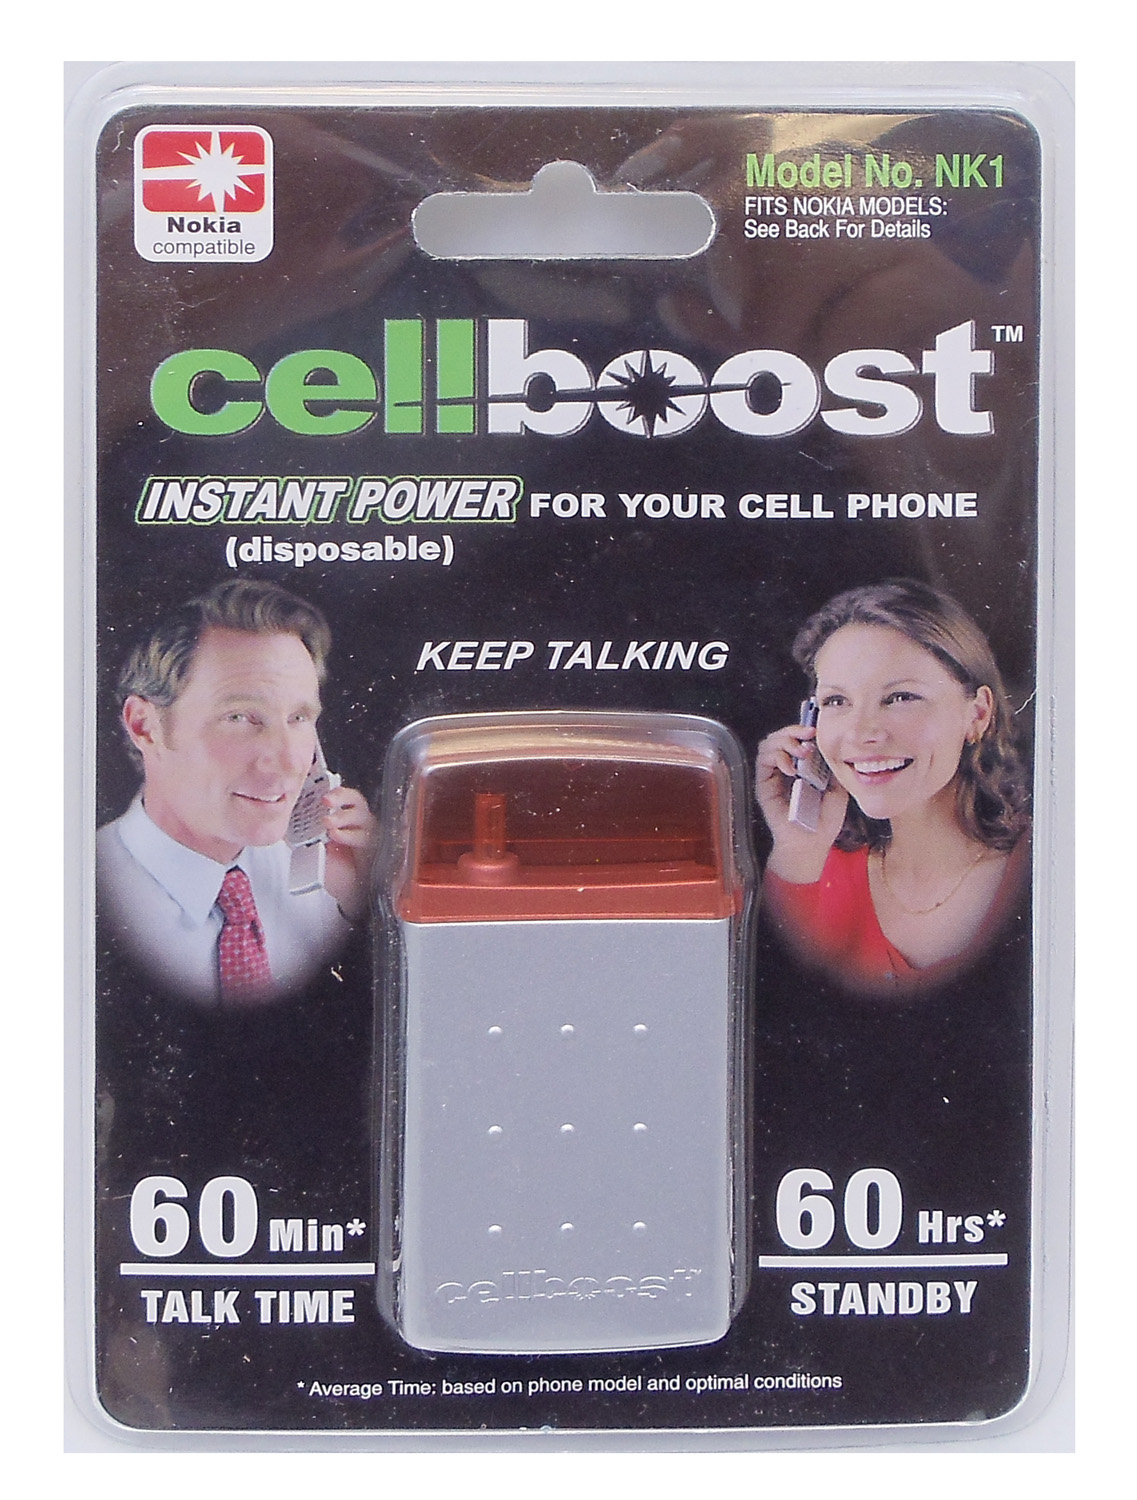 CELLBOOST - PROVIDES INSTANT POWER UP TO 60 MINUTES TALK TIME & 60 HOURS STANDBY FOR MOST NOKIA PHONES